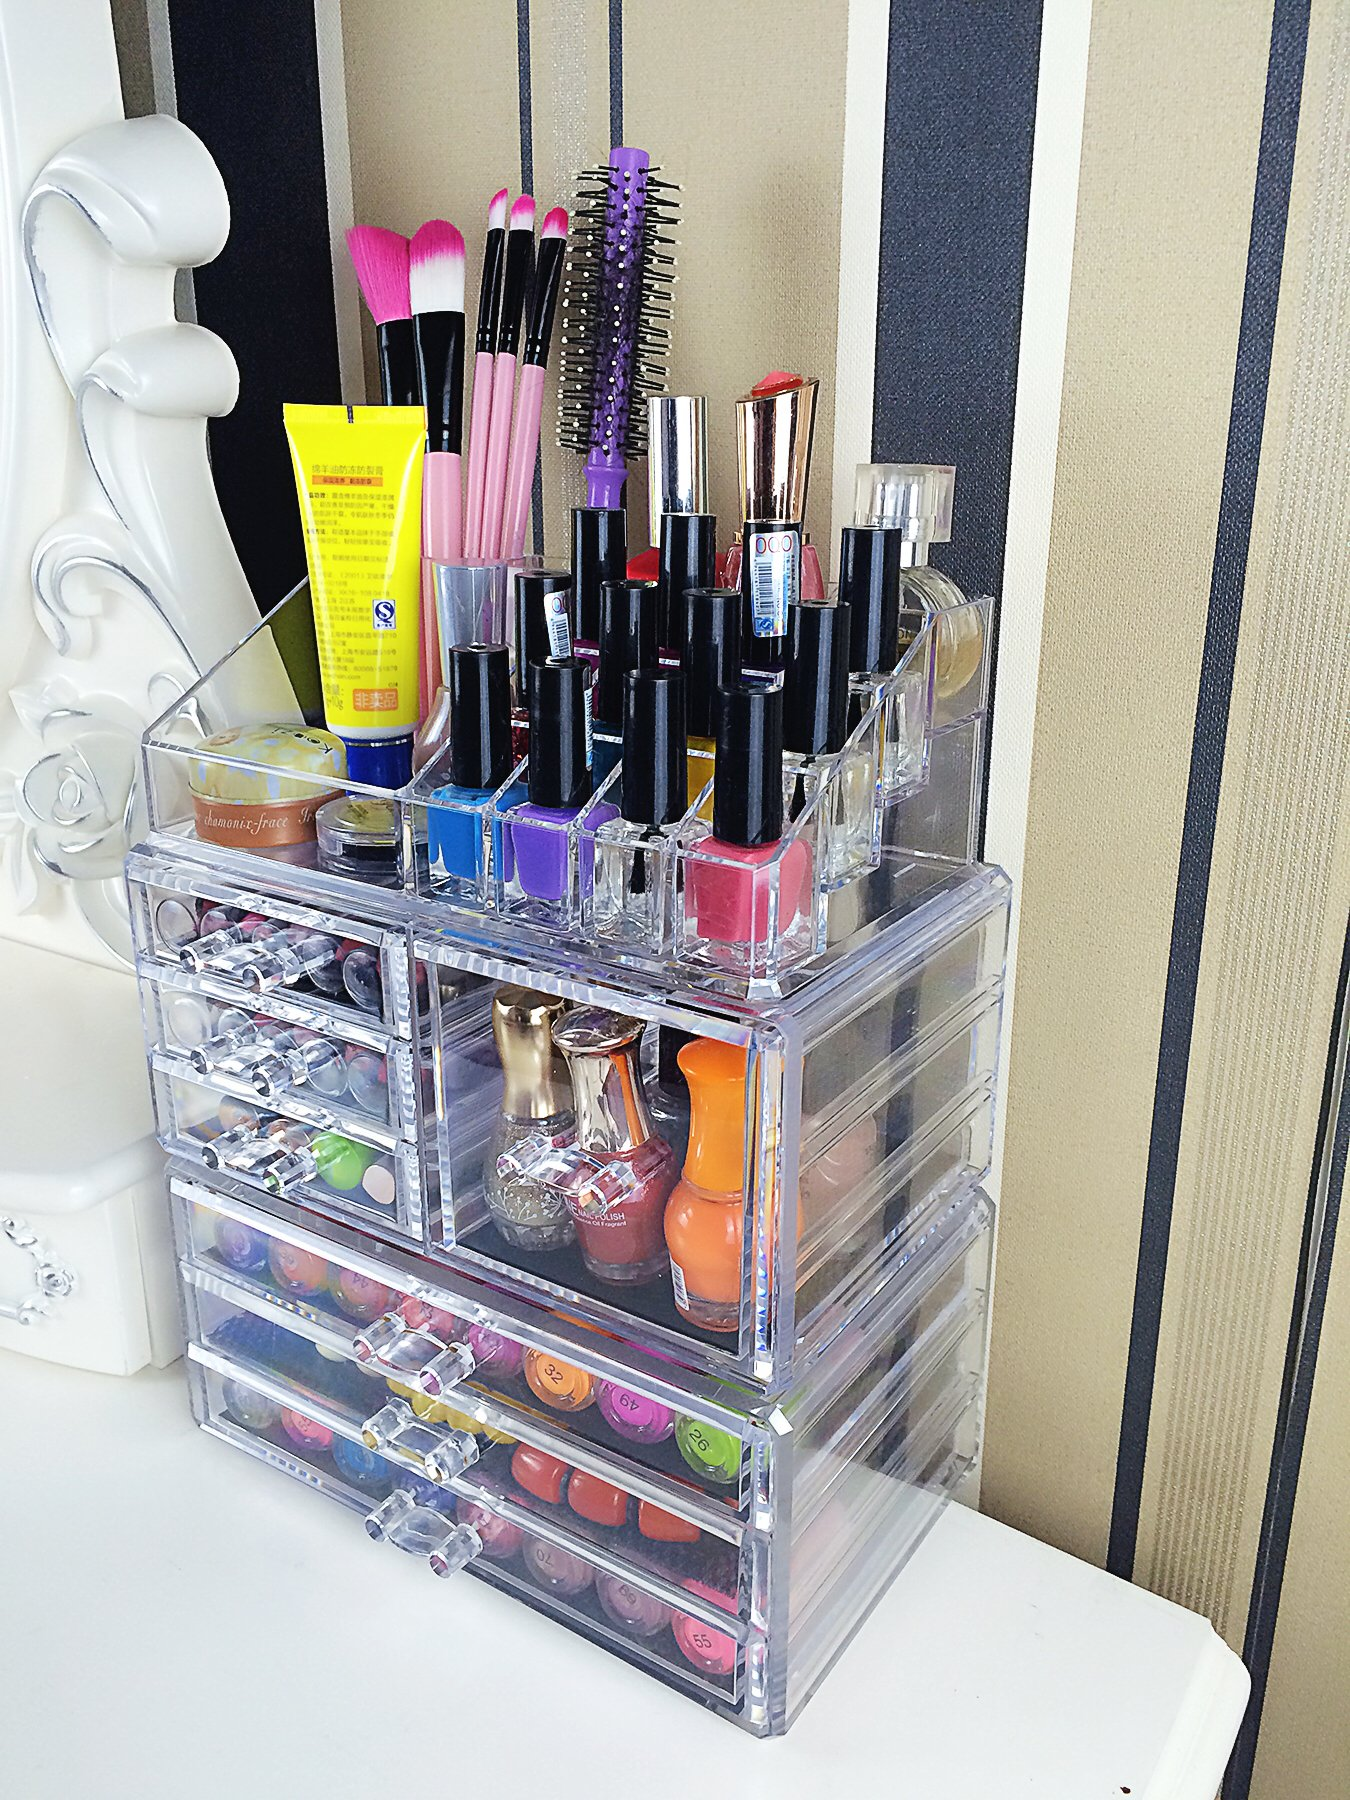 Cq acrylic 7 Drawers and 16 Grid Makeup Organizer,9.5''x6.5''x11.8'',Clear 2 Piece Set